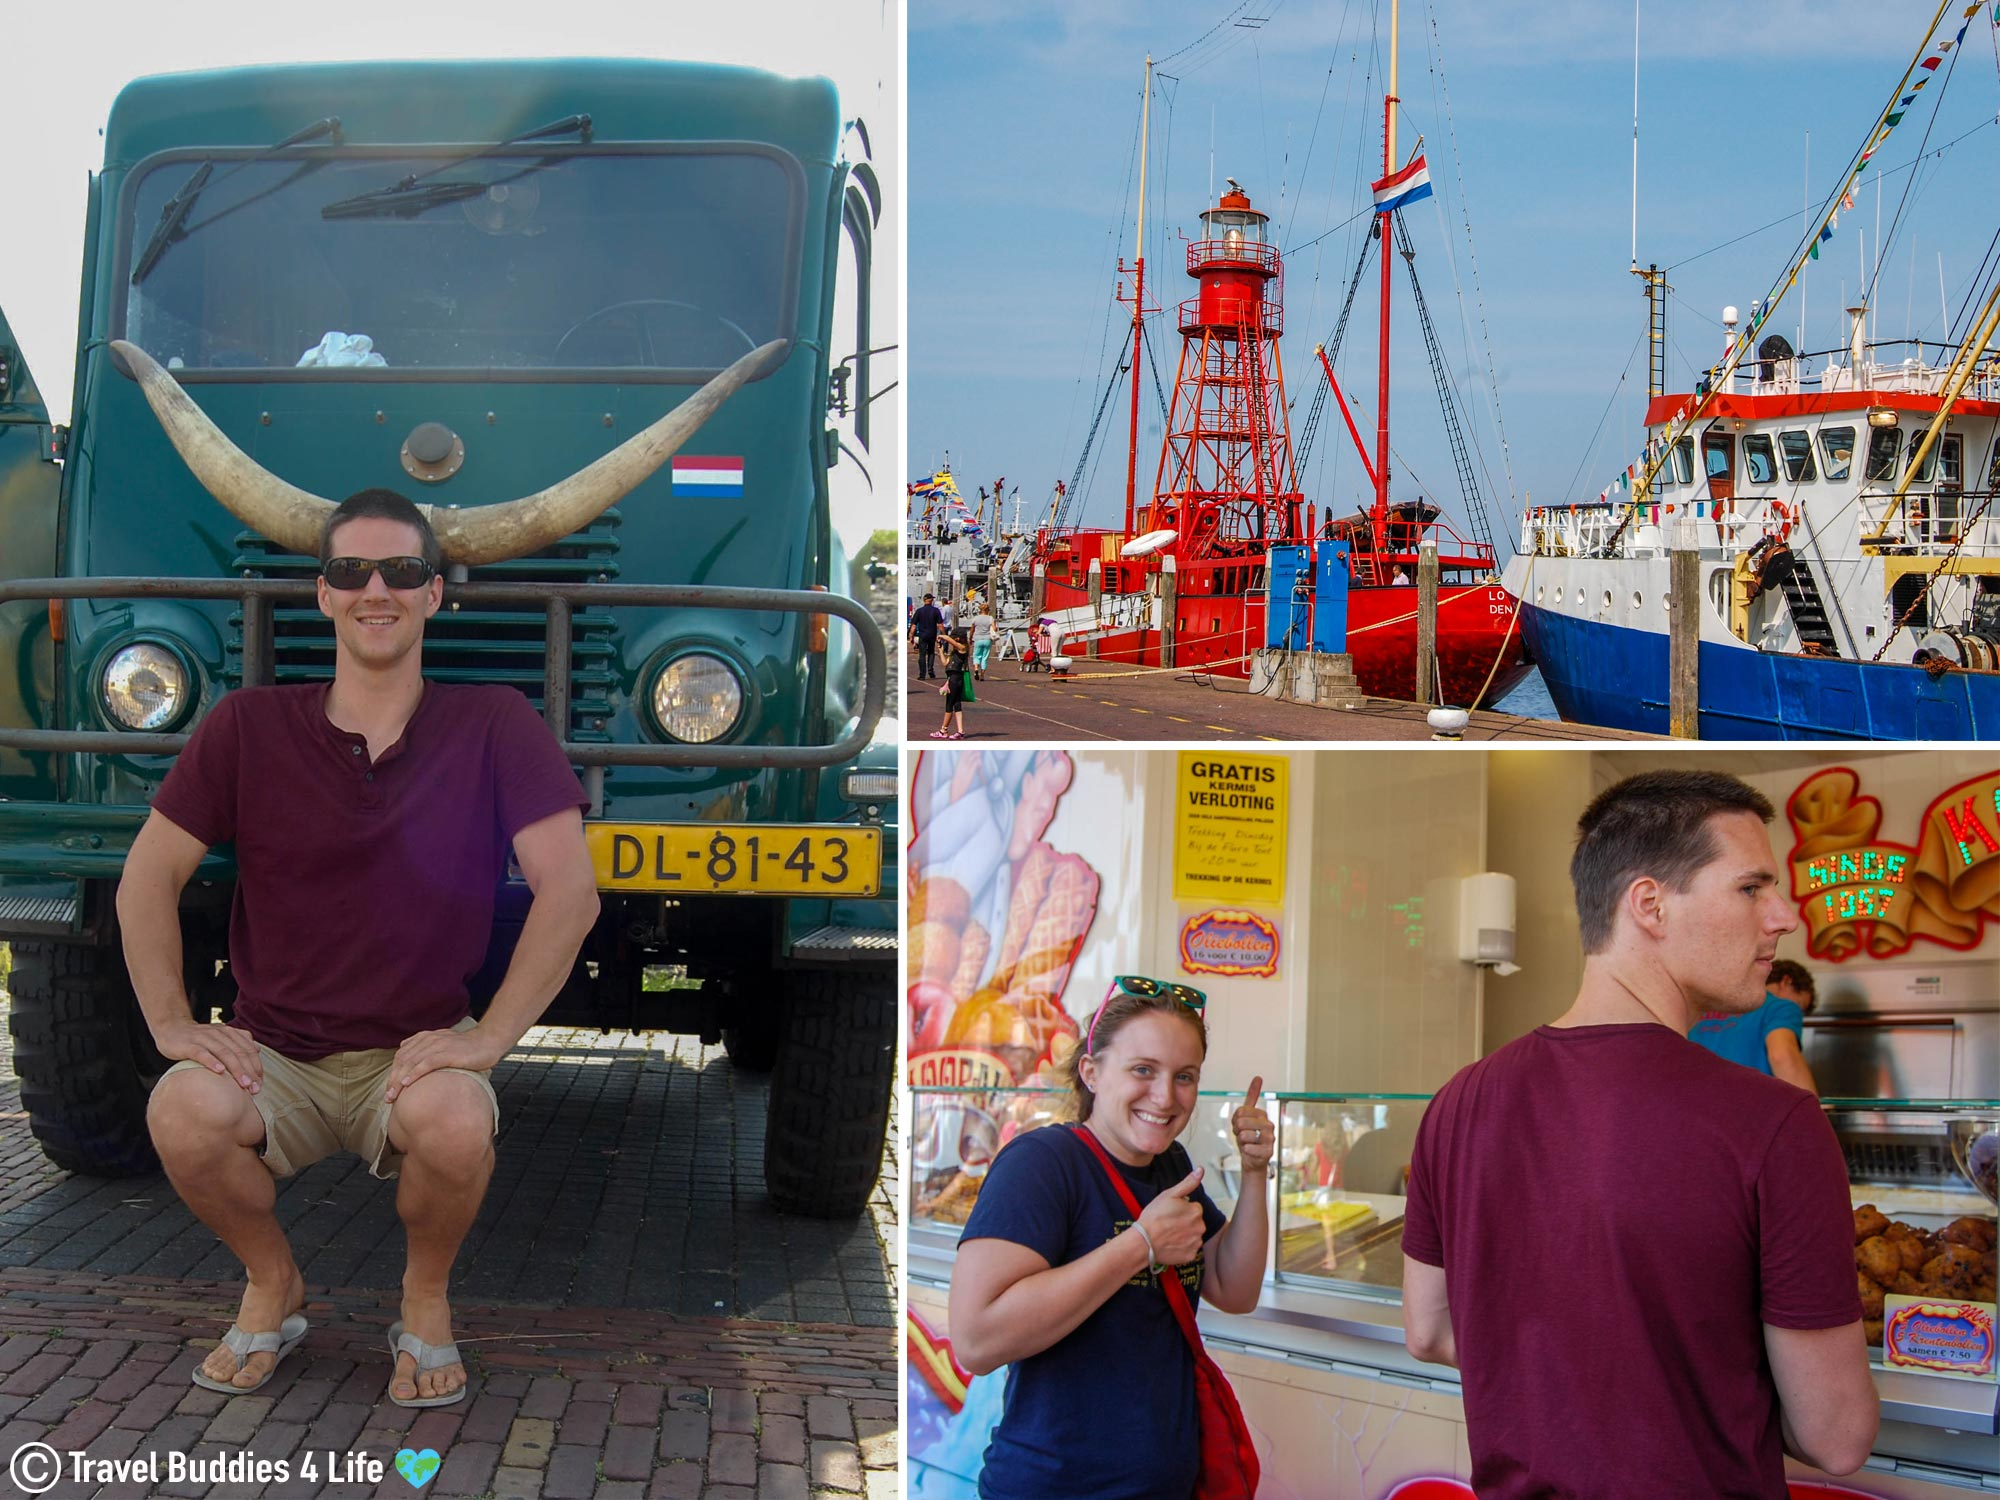 Joey And Ali At A Carnival In The Netherlands Getting Their Oil Balls, Dutch Treats